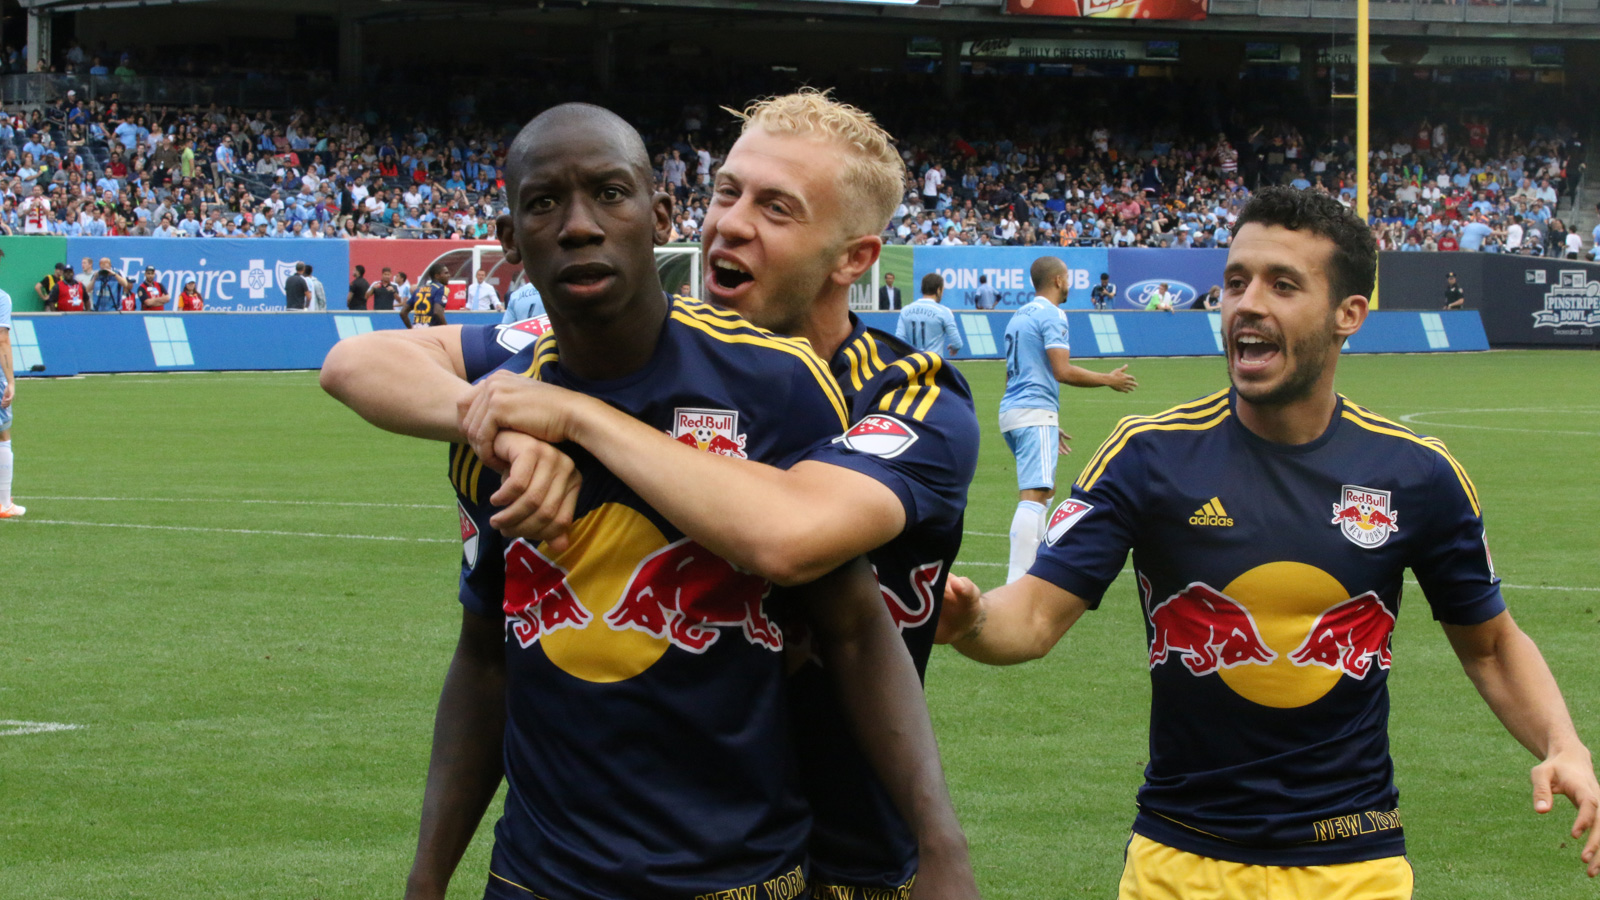 New York Red Bulls striker Bradley Wright-Phillips (left) celebrates with fellow striker Mike Grella (middle) and midfielder Felipe (right) after scoring the Red Bulls' first goal of the match, which tied the game less than two minutes into the second half.